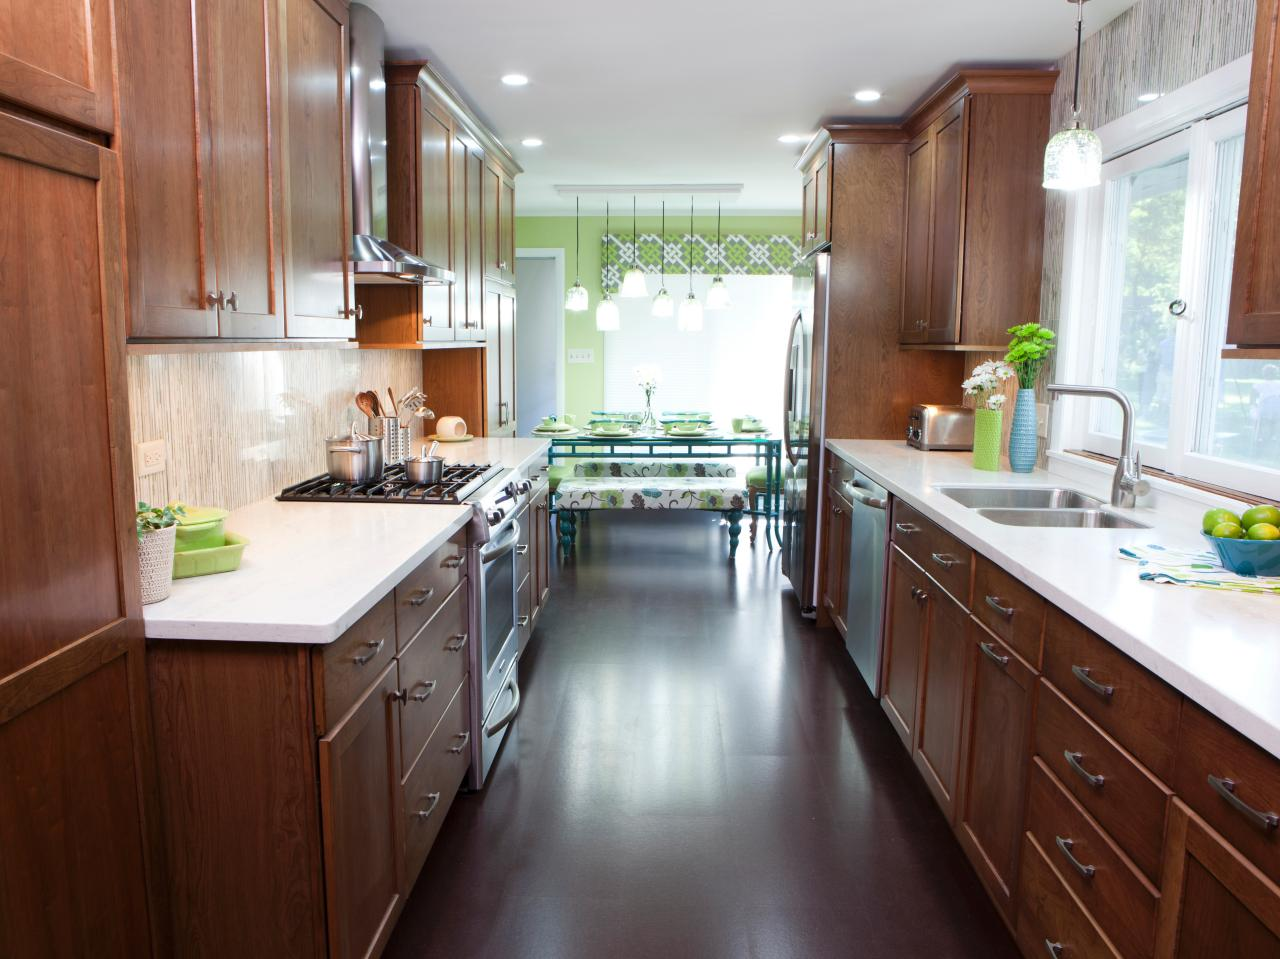 Galley Kitchen Lighting Design